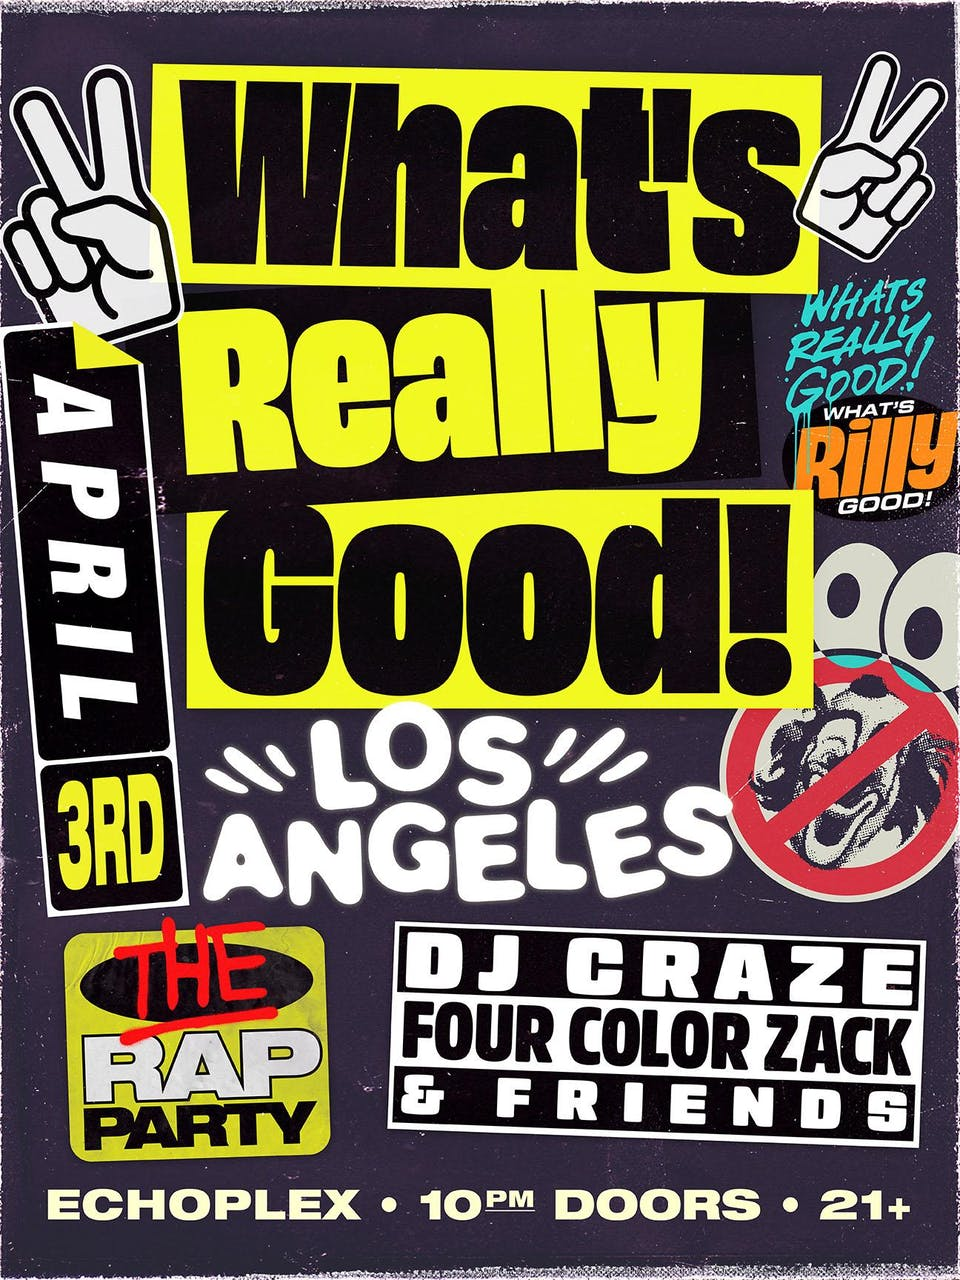 What's Really Good!: DJ CRAZE x FOUR COLOR ZACK & Friends (moved from 4/3)